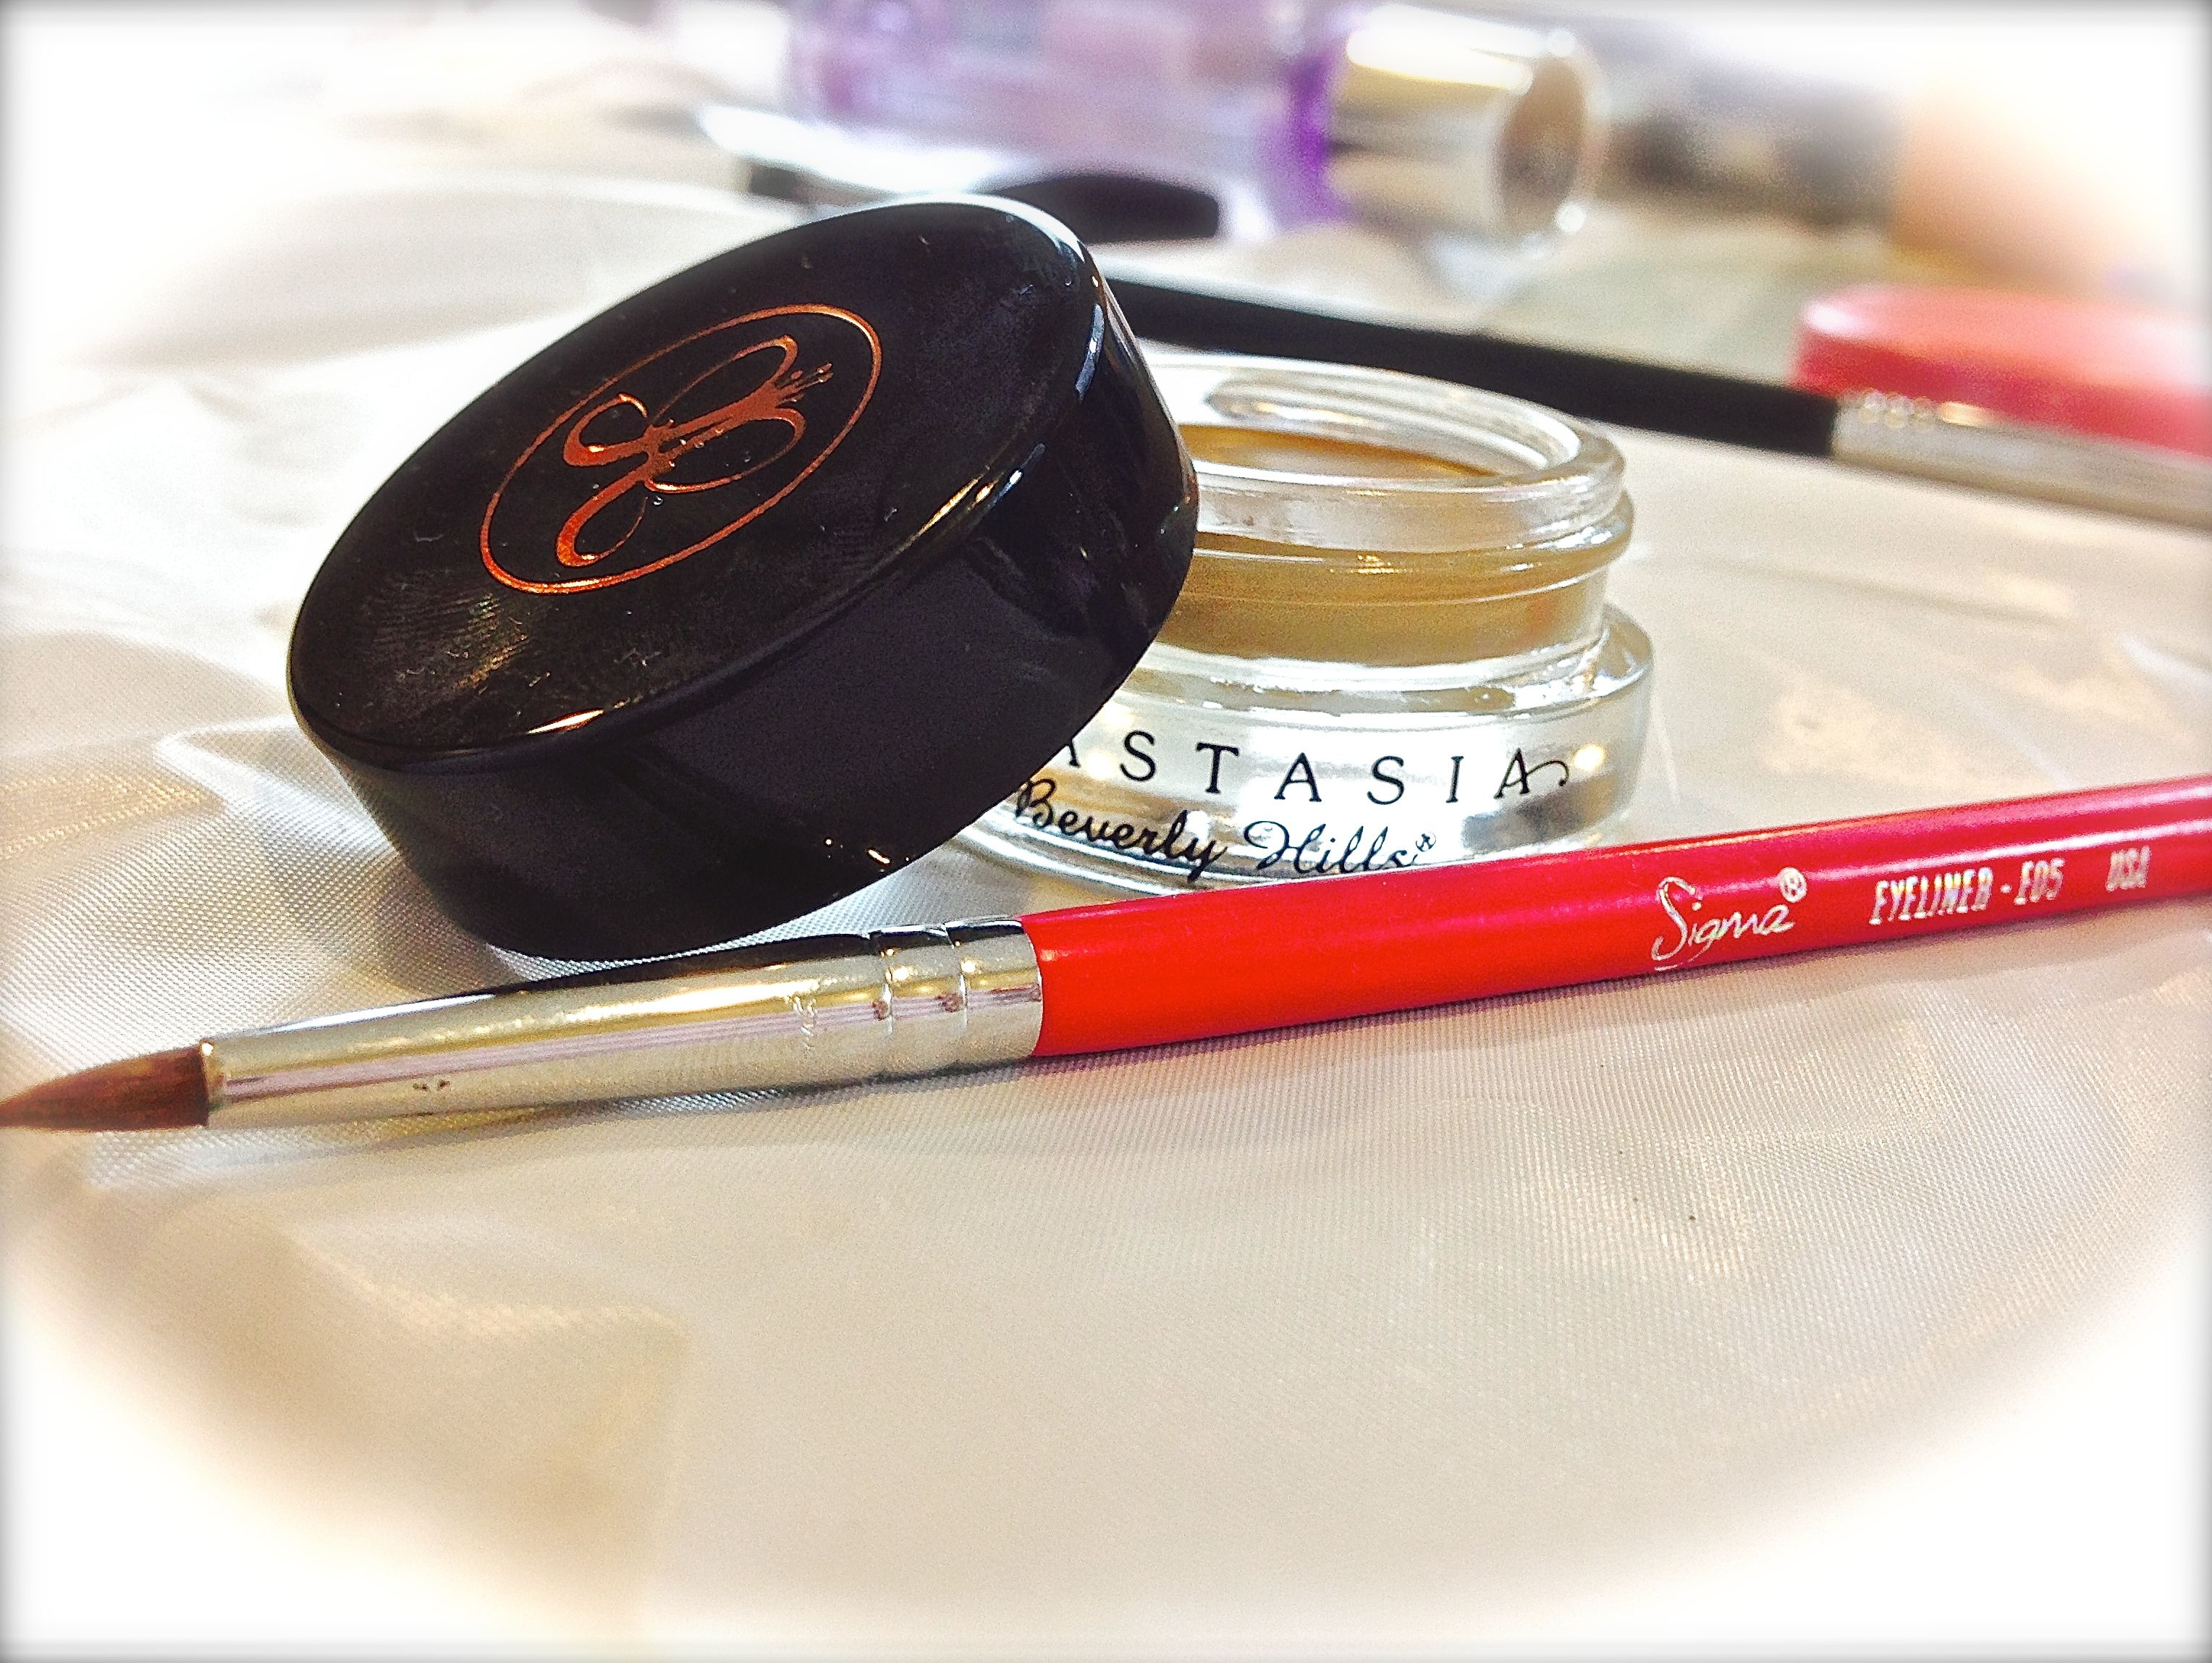 2atmakeup.com Your brows have never looked so good with the Anastasia Dip Brow Pompade. I am in the color Blonde and use a small Sigma brush to apply it to the outer half of my eyebrows. http://www.anastasia.net/ABH-Dipbrow-Pomade.html